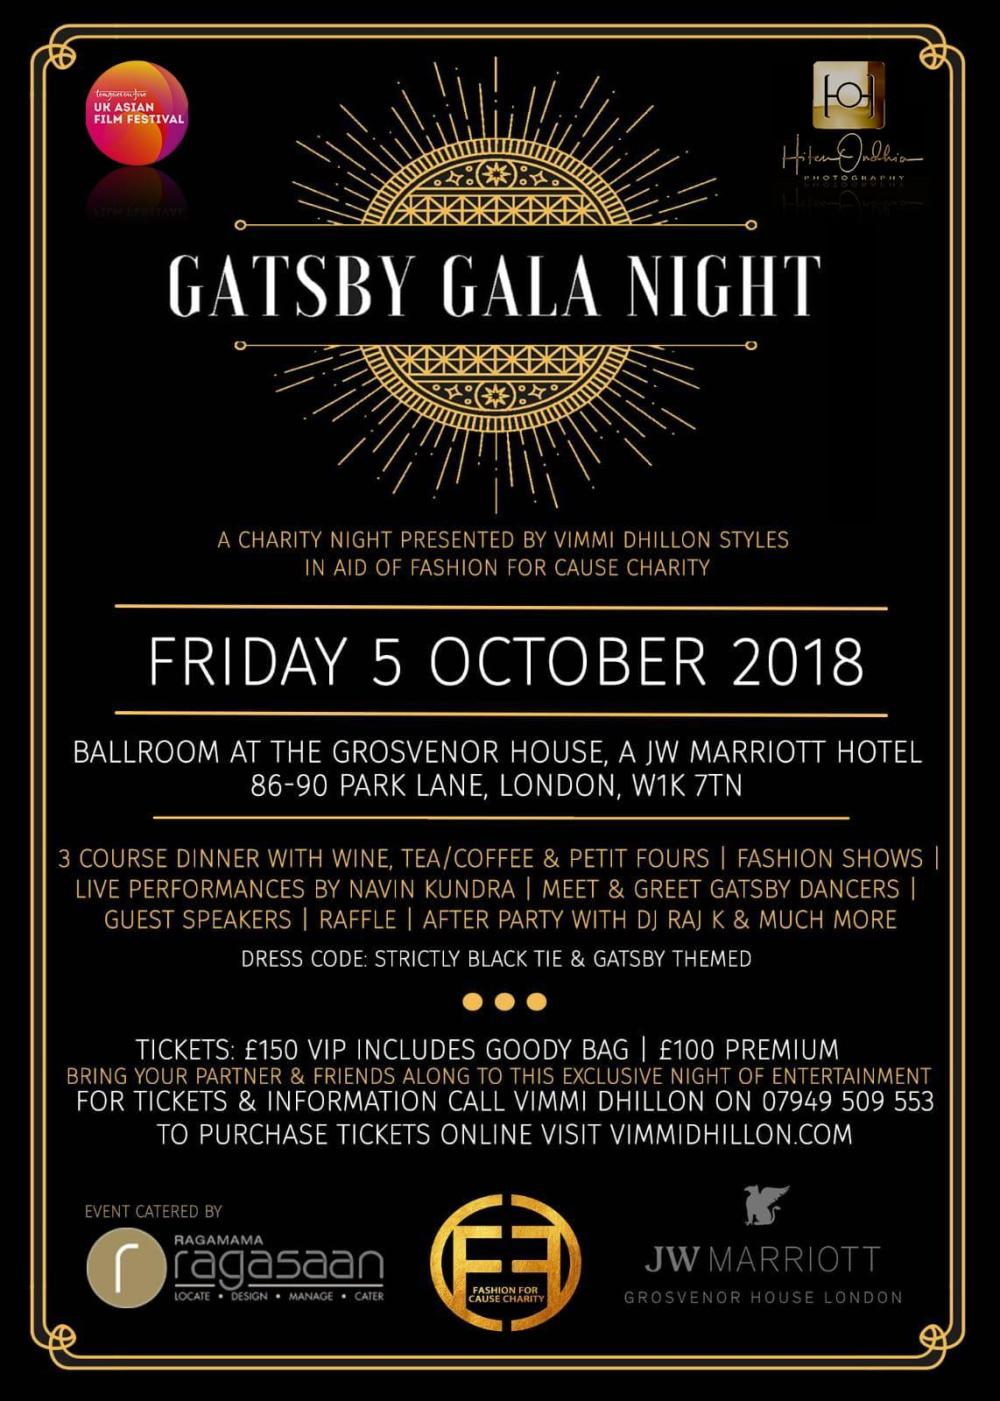 After A Successful Debut Vimmi Dhillon Styles Returns With A Gatsby